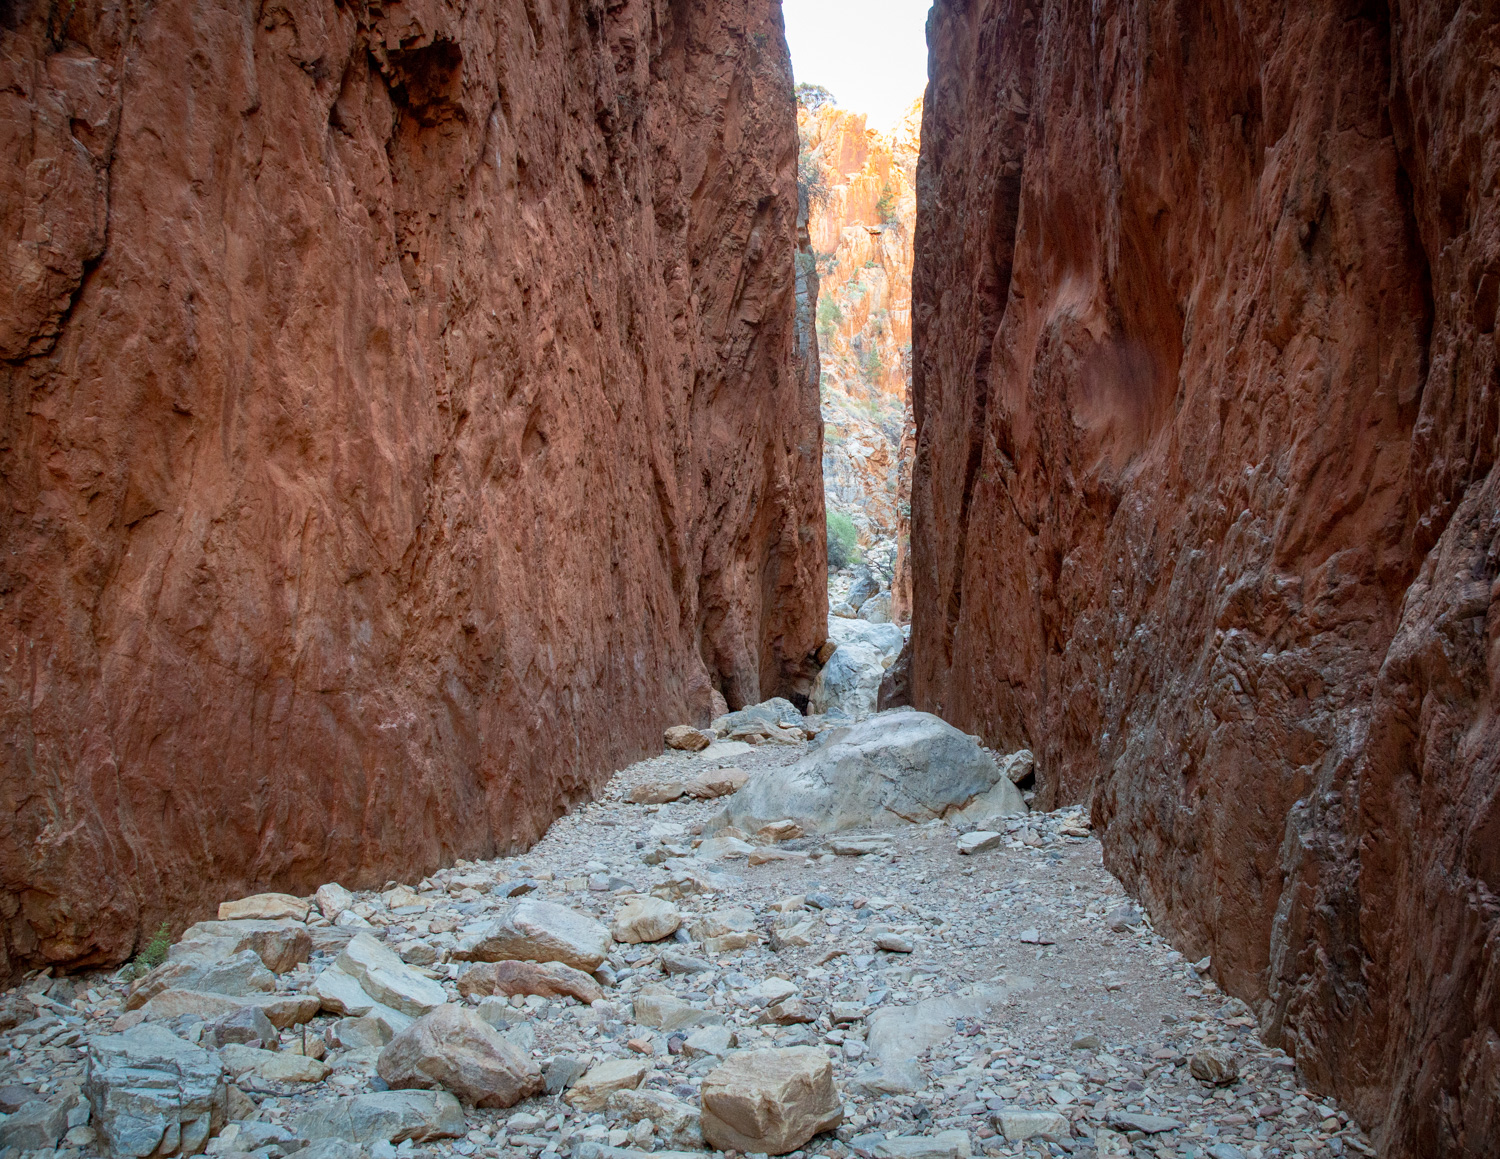 Standley Chasm in the West McDonnell Ranges